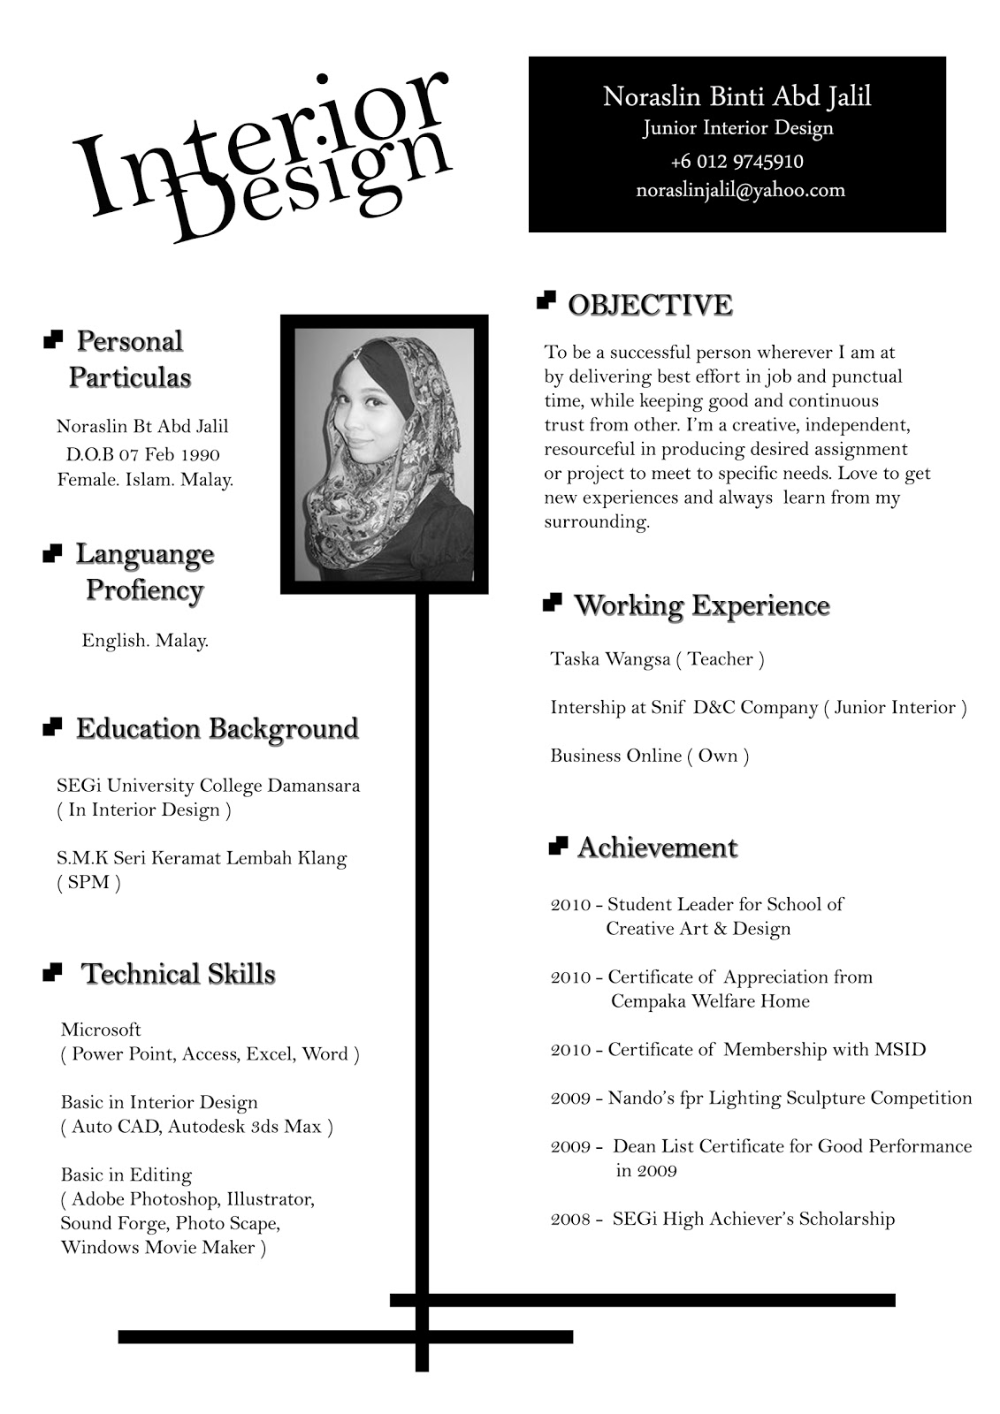 resume for interior designer in 2020 (With images